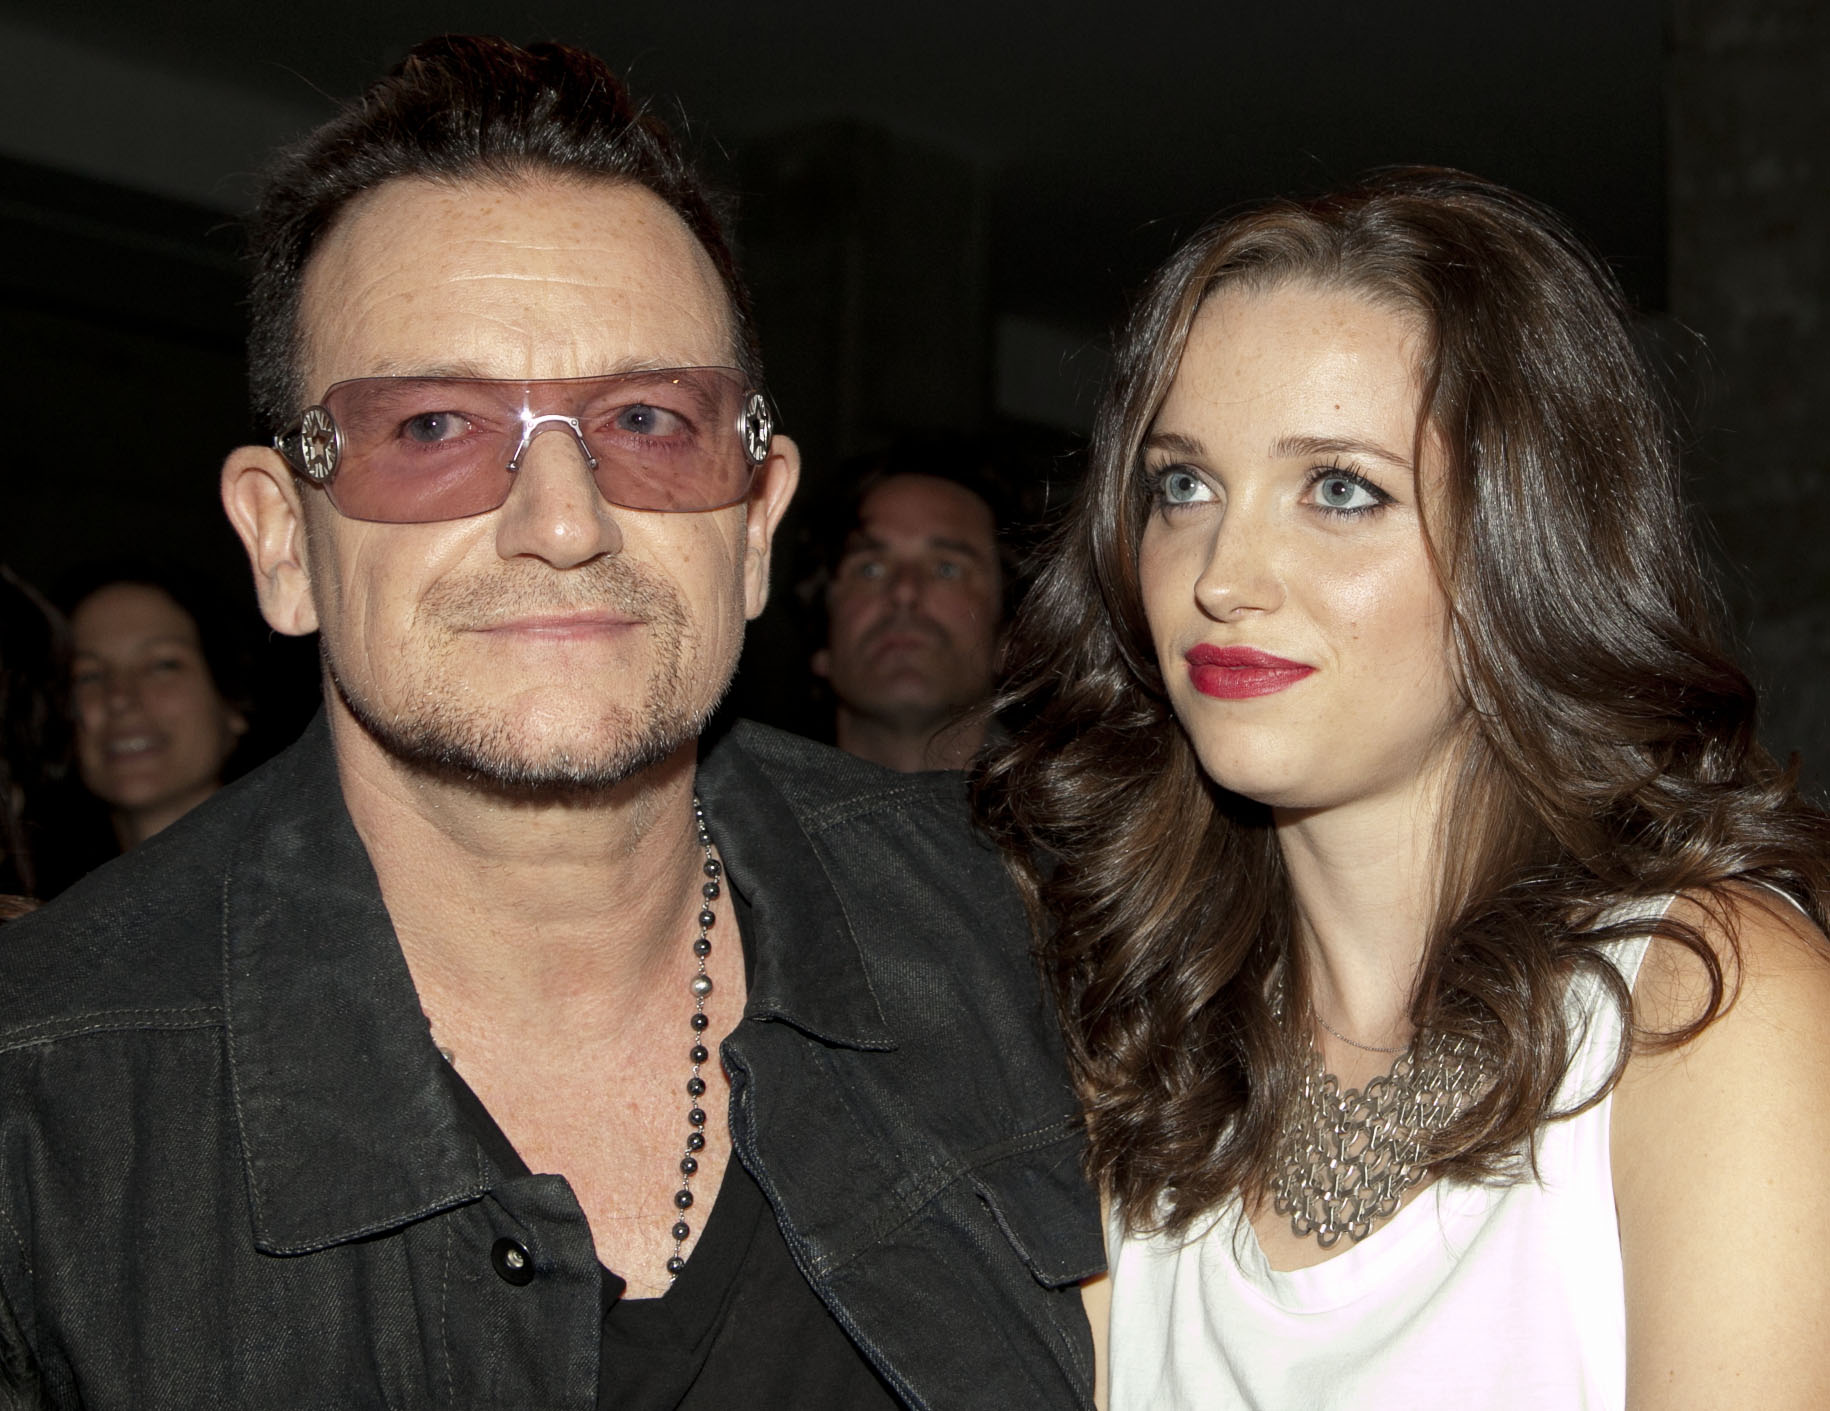 NEW YORK, NY - SEPTEMBER 08:  Bono and daughter Jordan Hewson attend the Edun fashion show during Mercedes-Benz Fashion Week